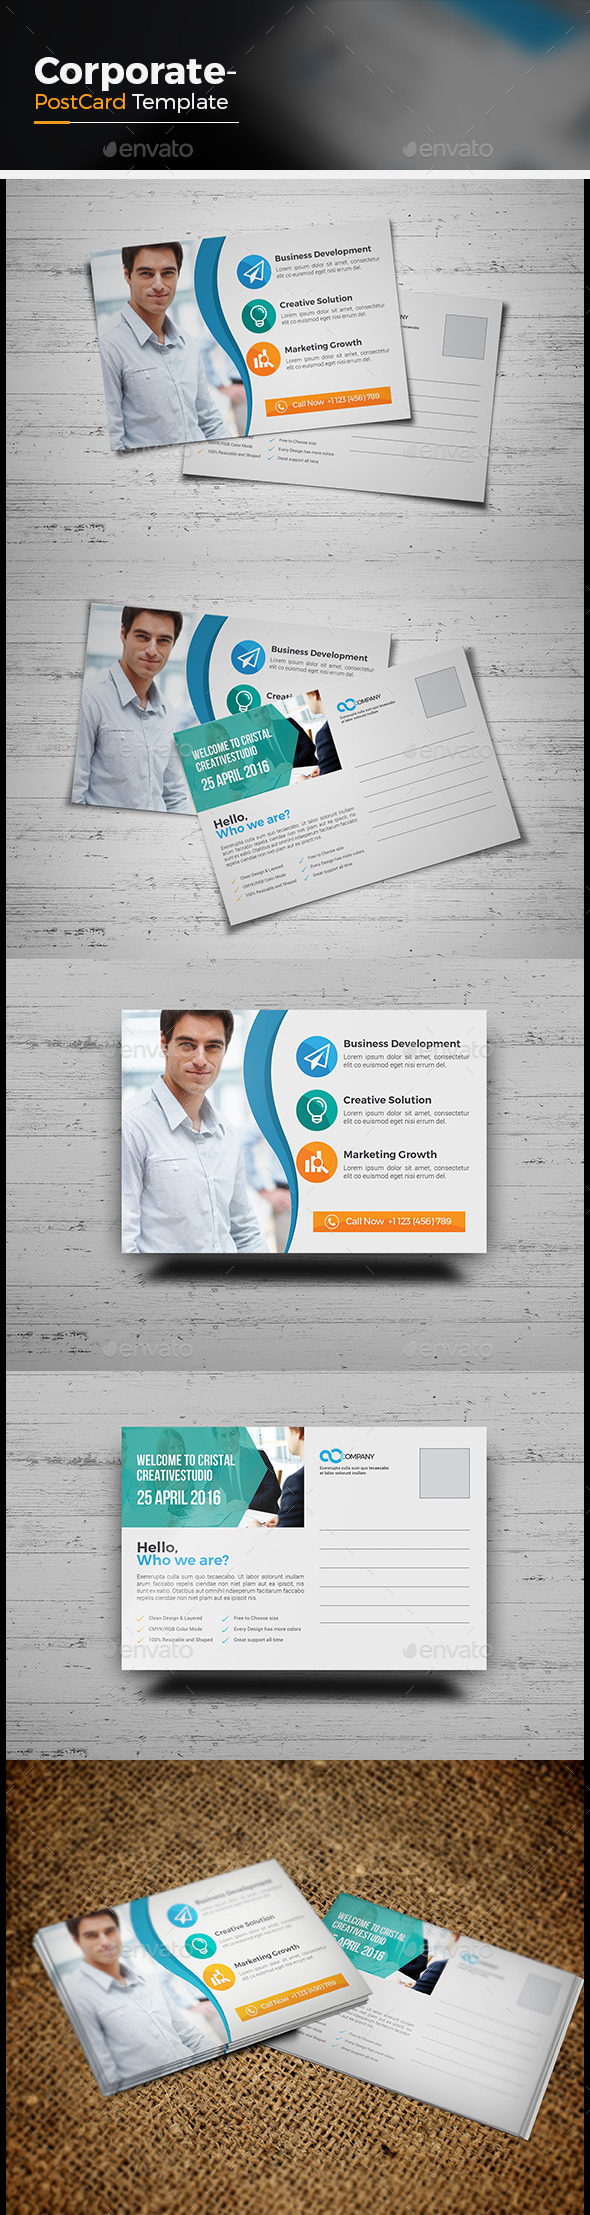 Corporate Postcard Template - Cards & Invites Print Templates